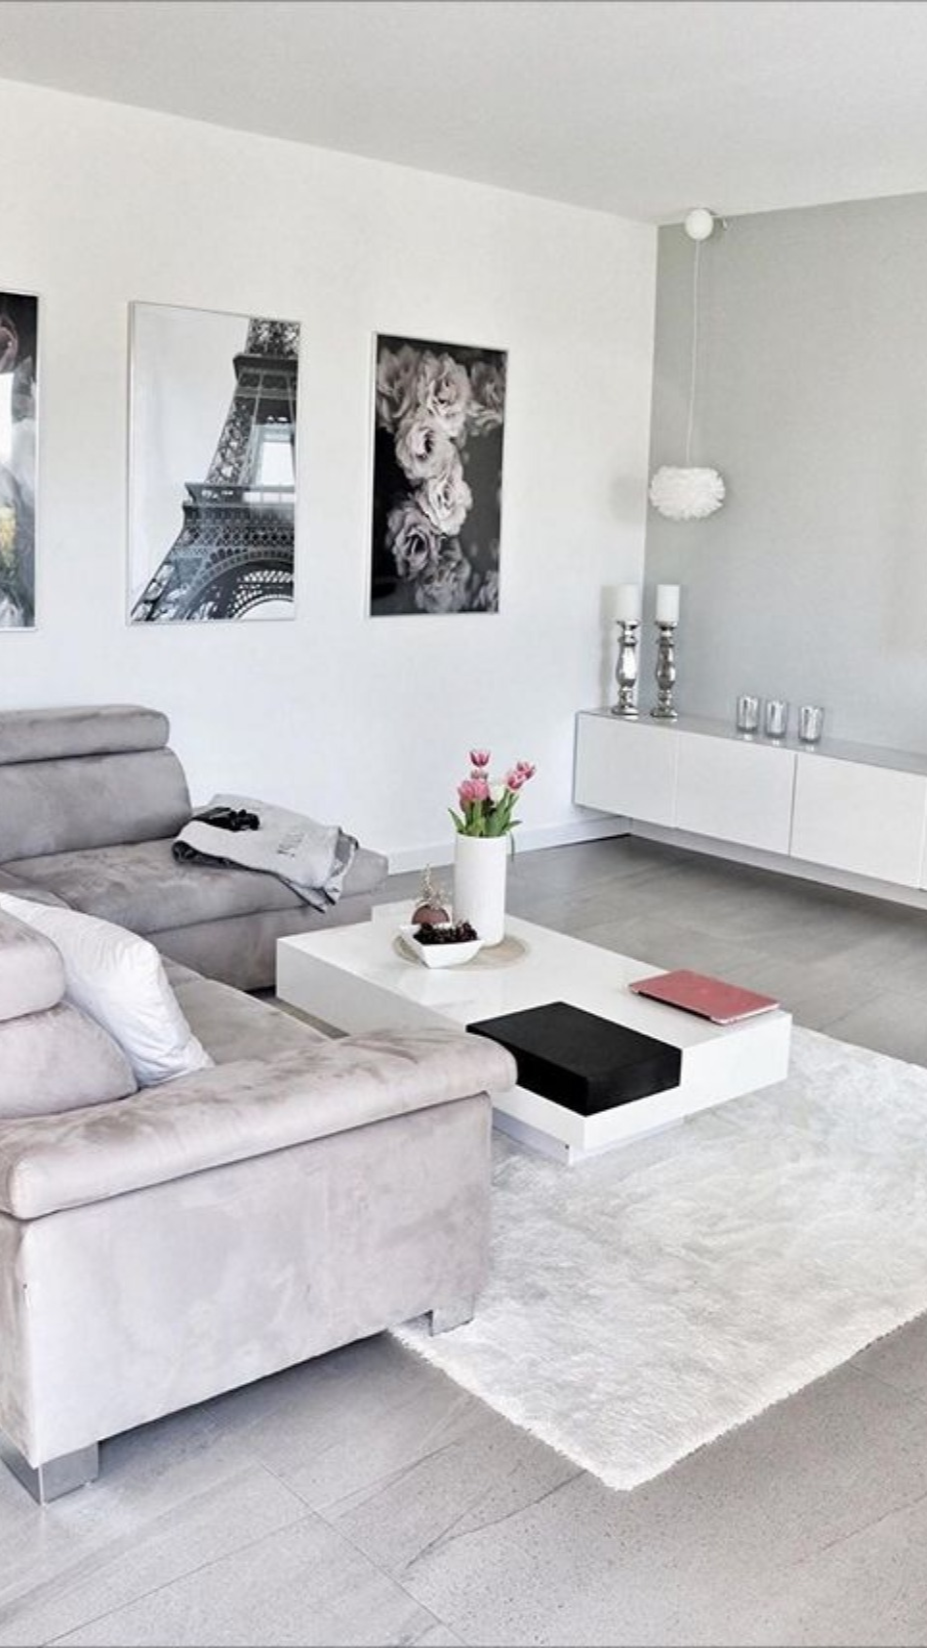 Loving the new look of the wall inside this relaxing living room